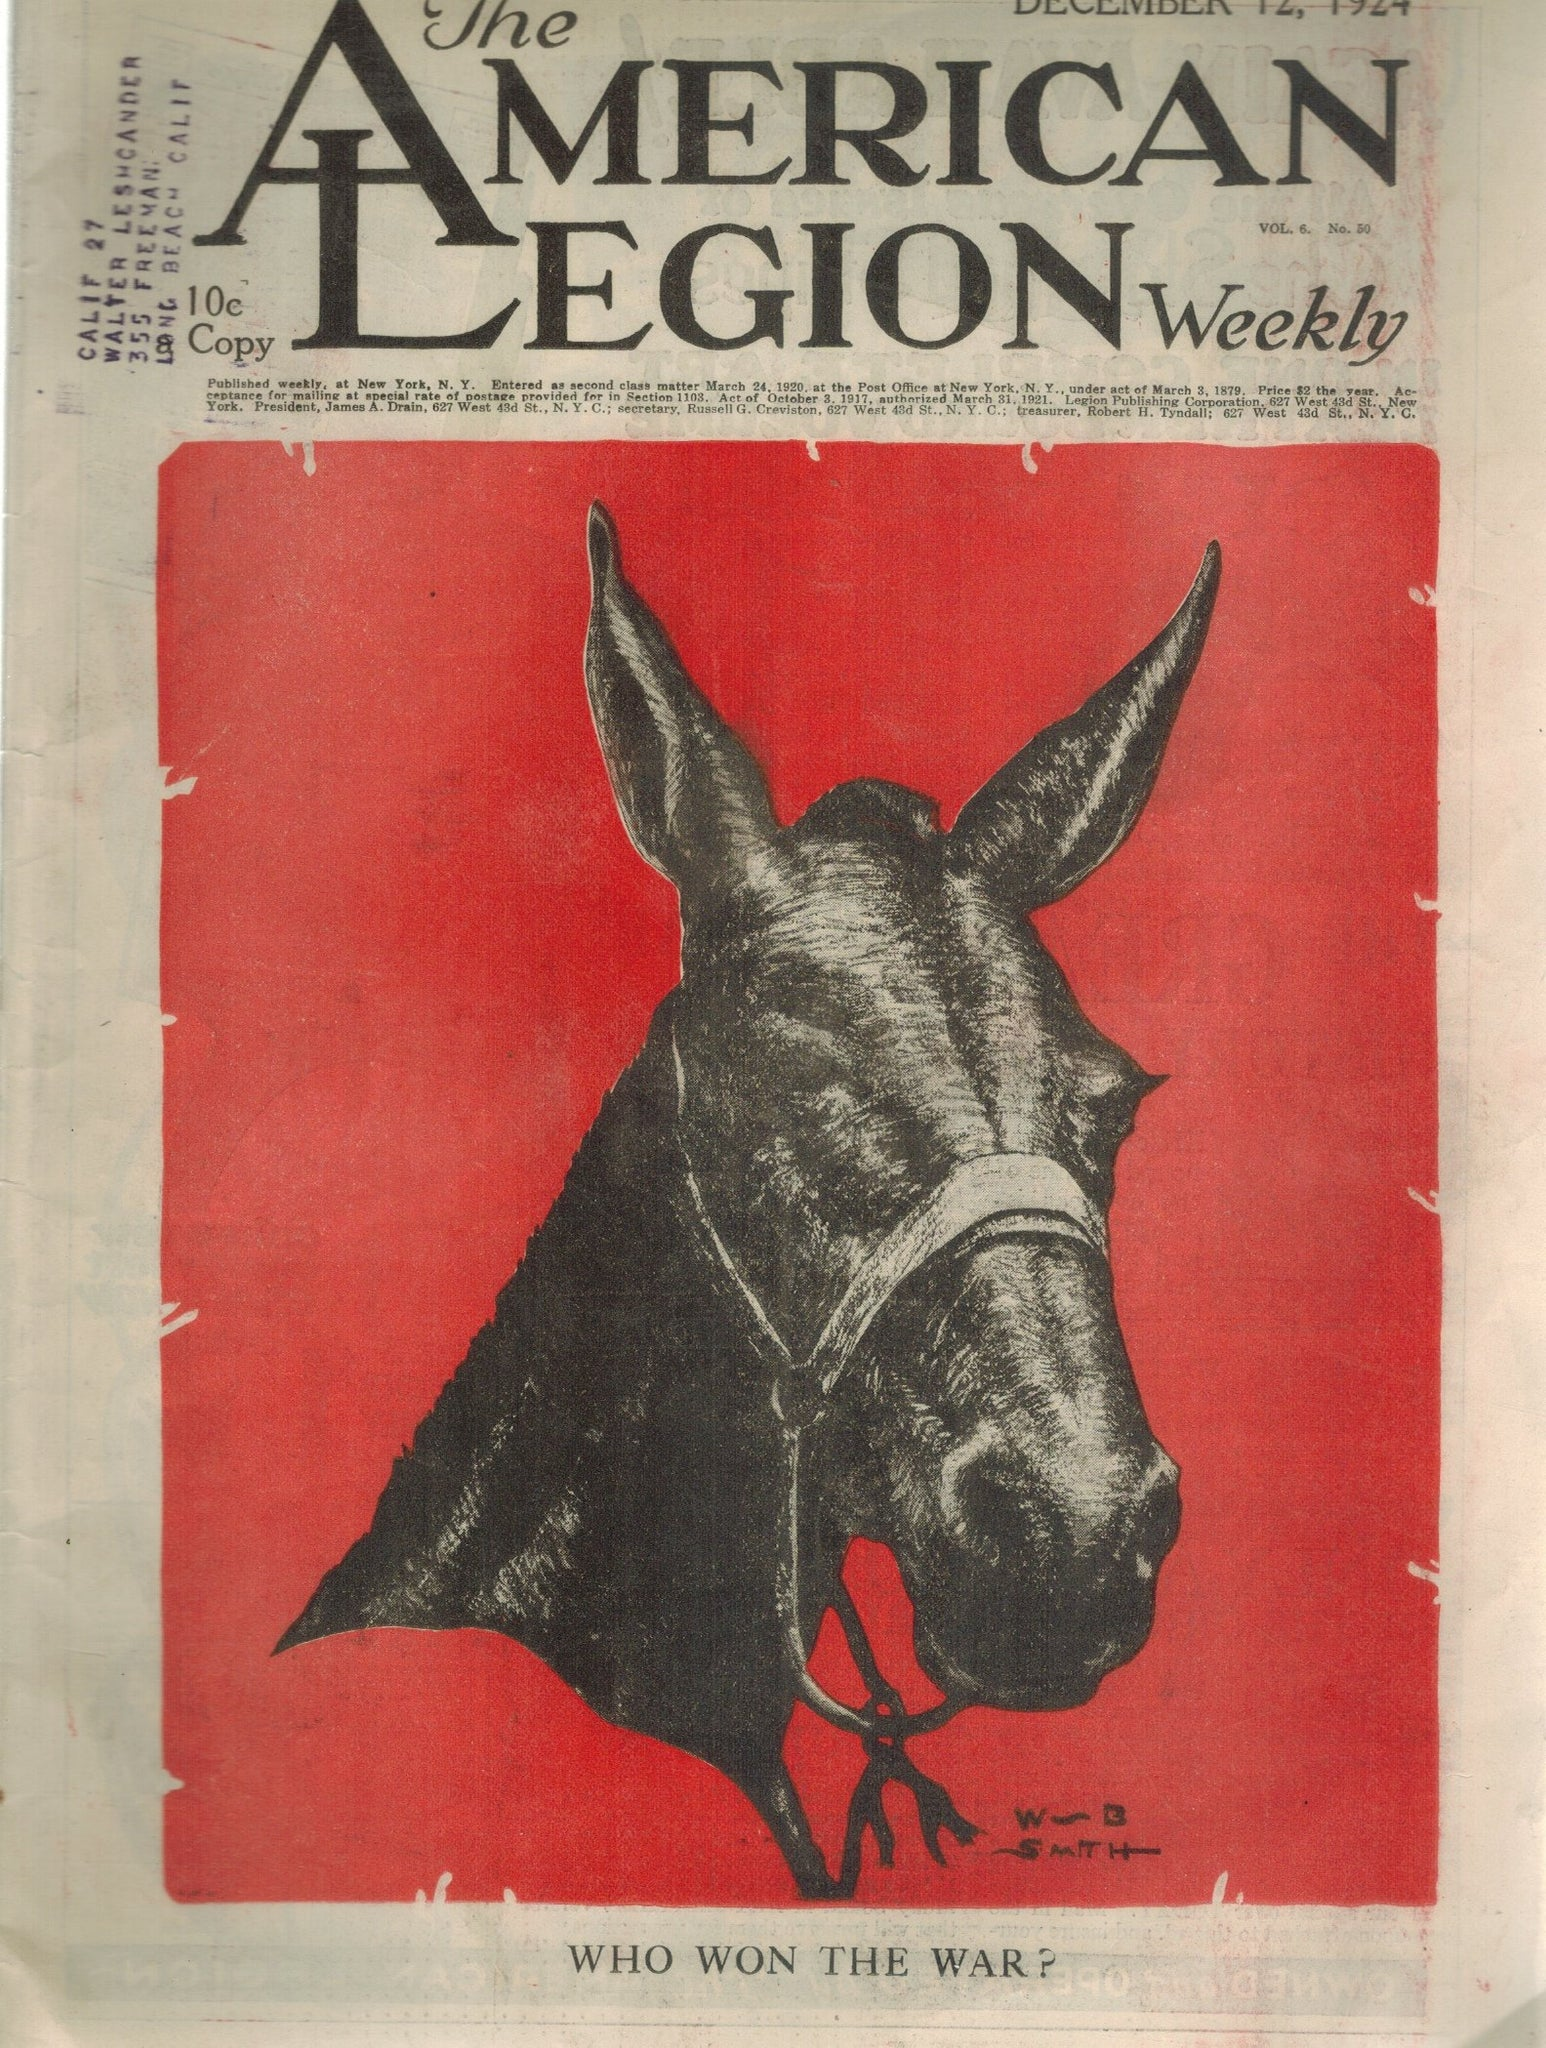 THE AMERICAN LEGION WEEKLY VOL. 6 NO. 50 DECEMBER 12, 1924